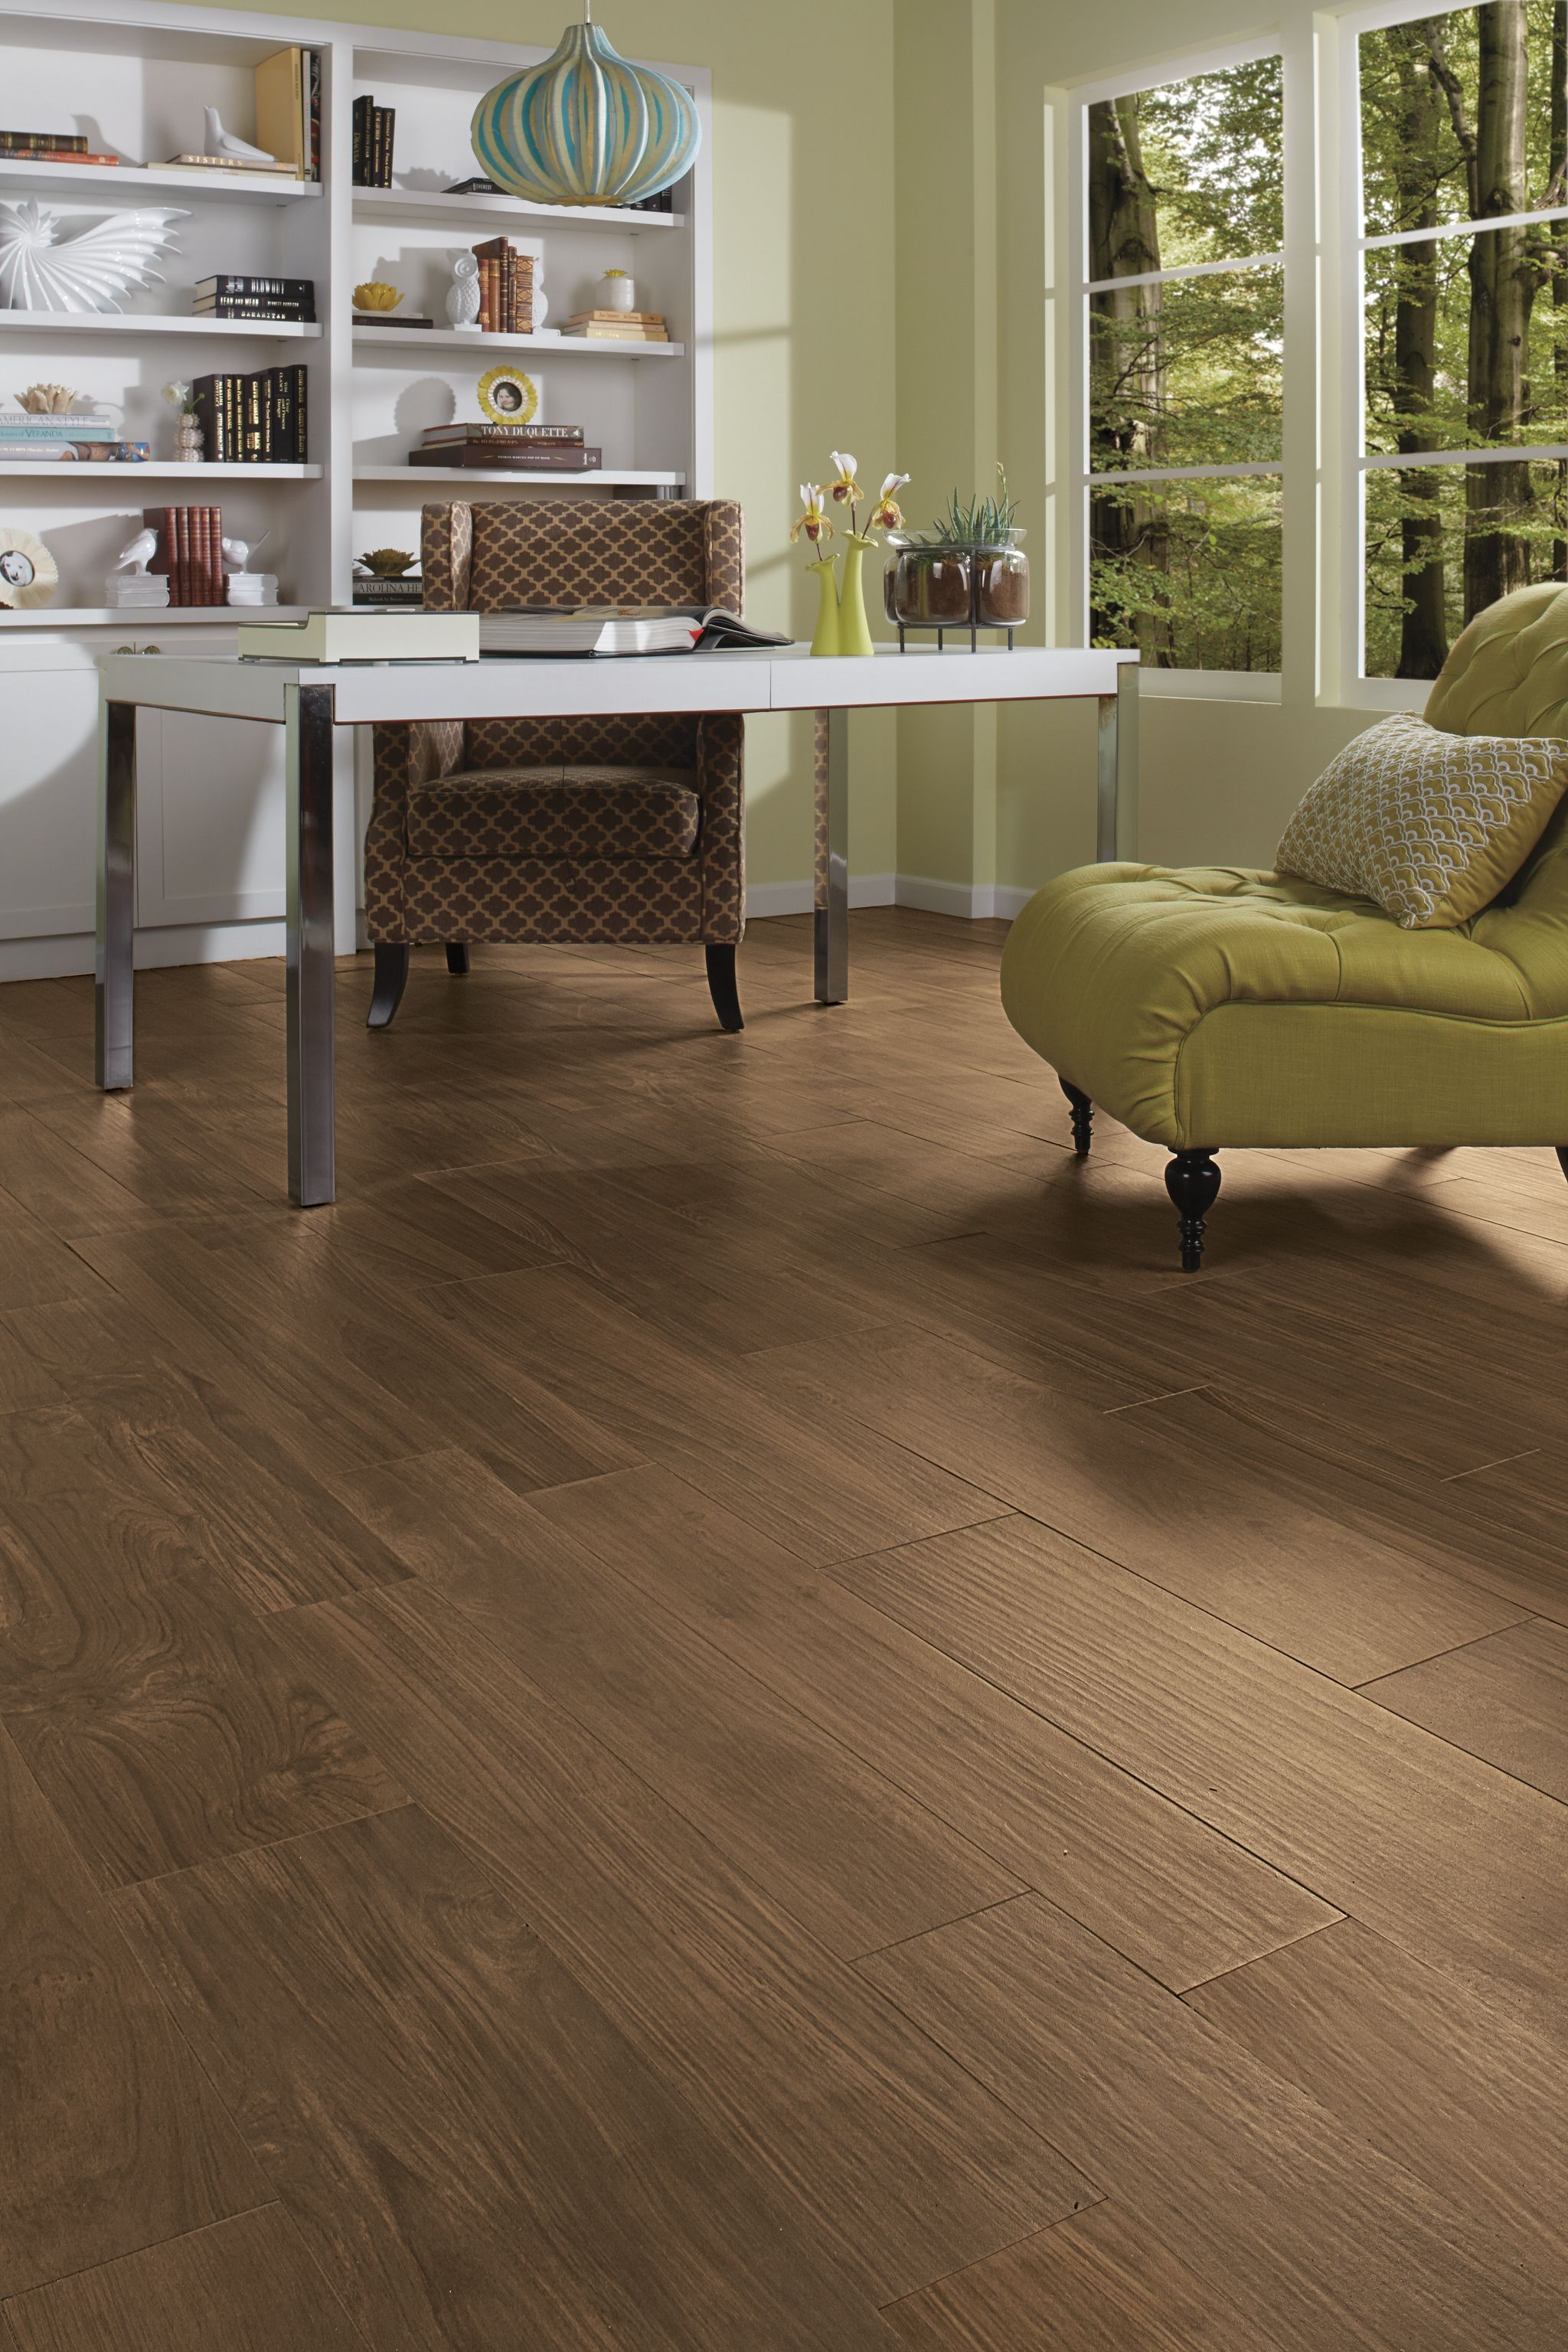 Photo Features Forest Park By Daltile In Timberland 9x36 And 6x36